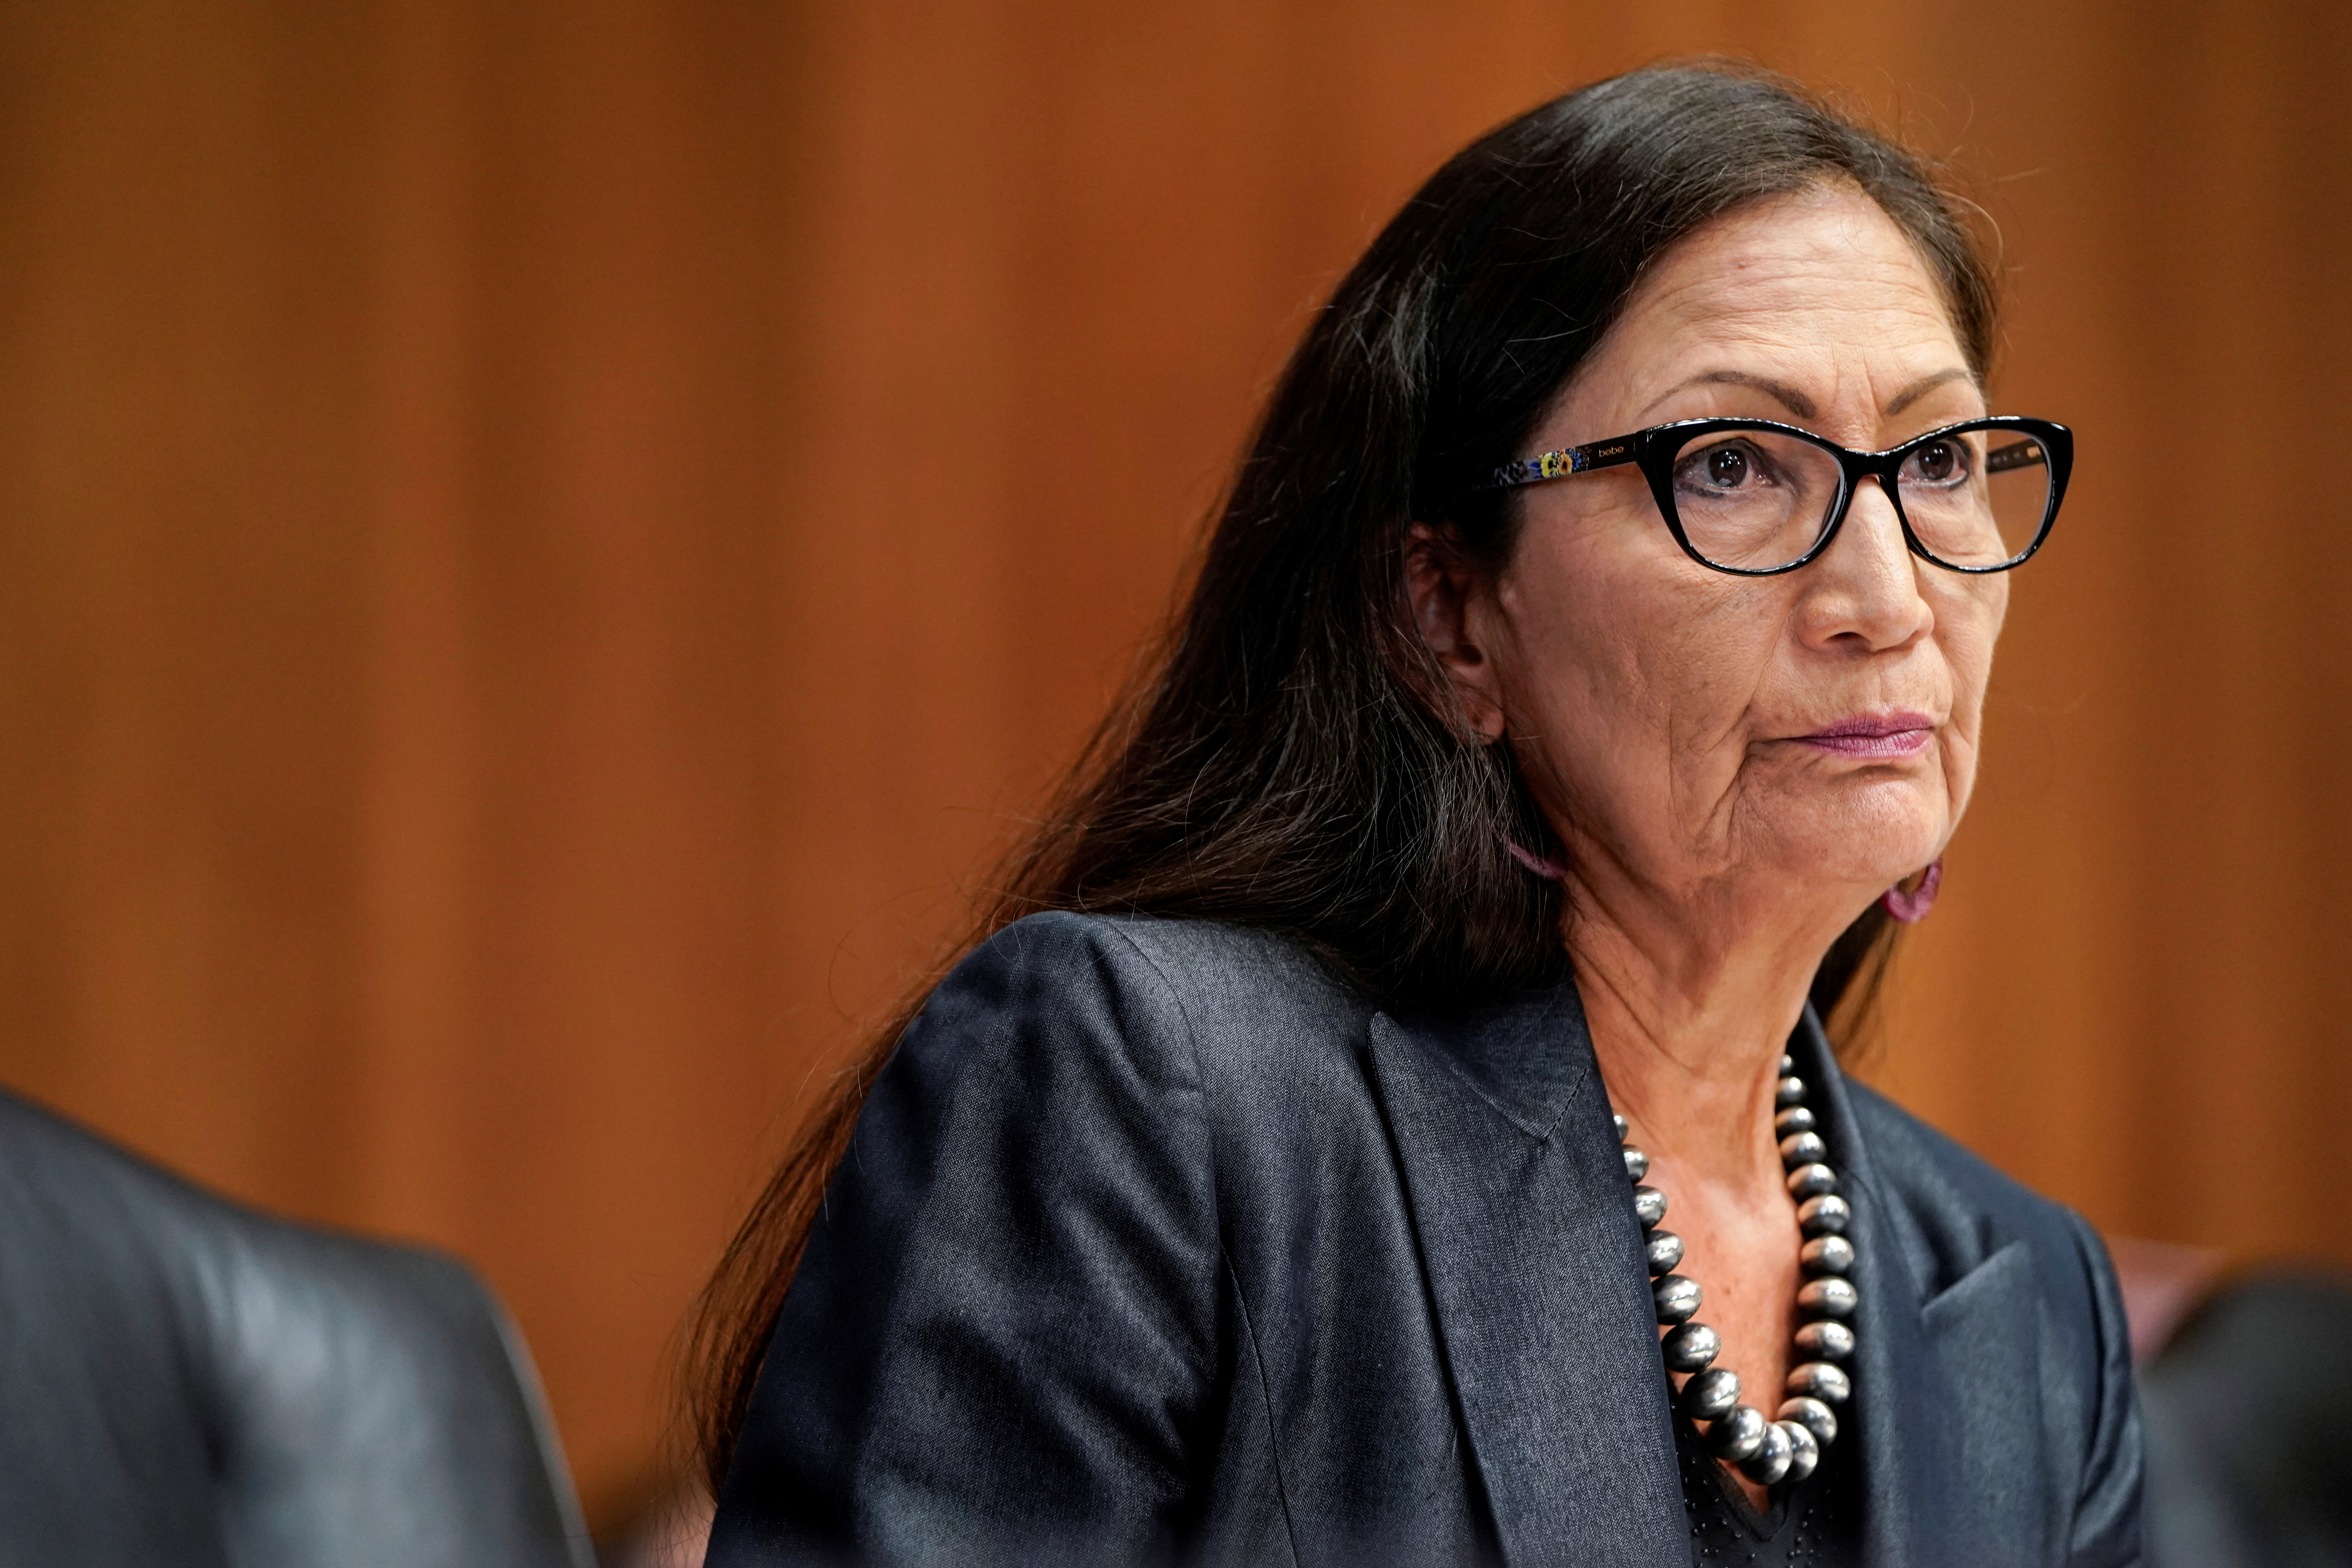 U.S. Secretary of Interior Deb Haaland listens to a question during a hearing for a budget request for the Department of the Interior for 2022 to the Senate Committee on Energy and Natural Resources on Capitol Hill in Washington, U.S., July 27, 2021. REUTERS/Joshua Roberts